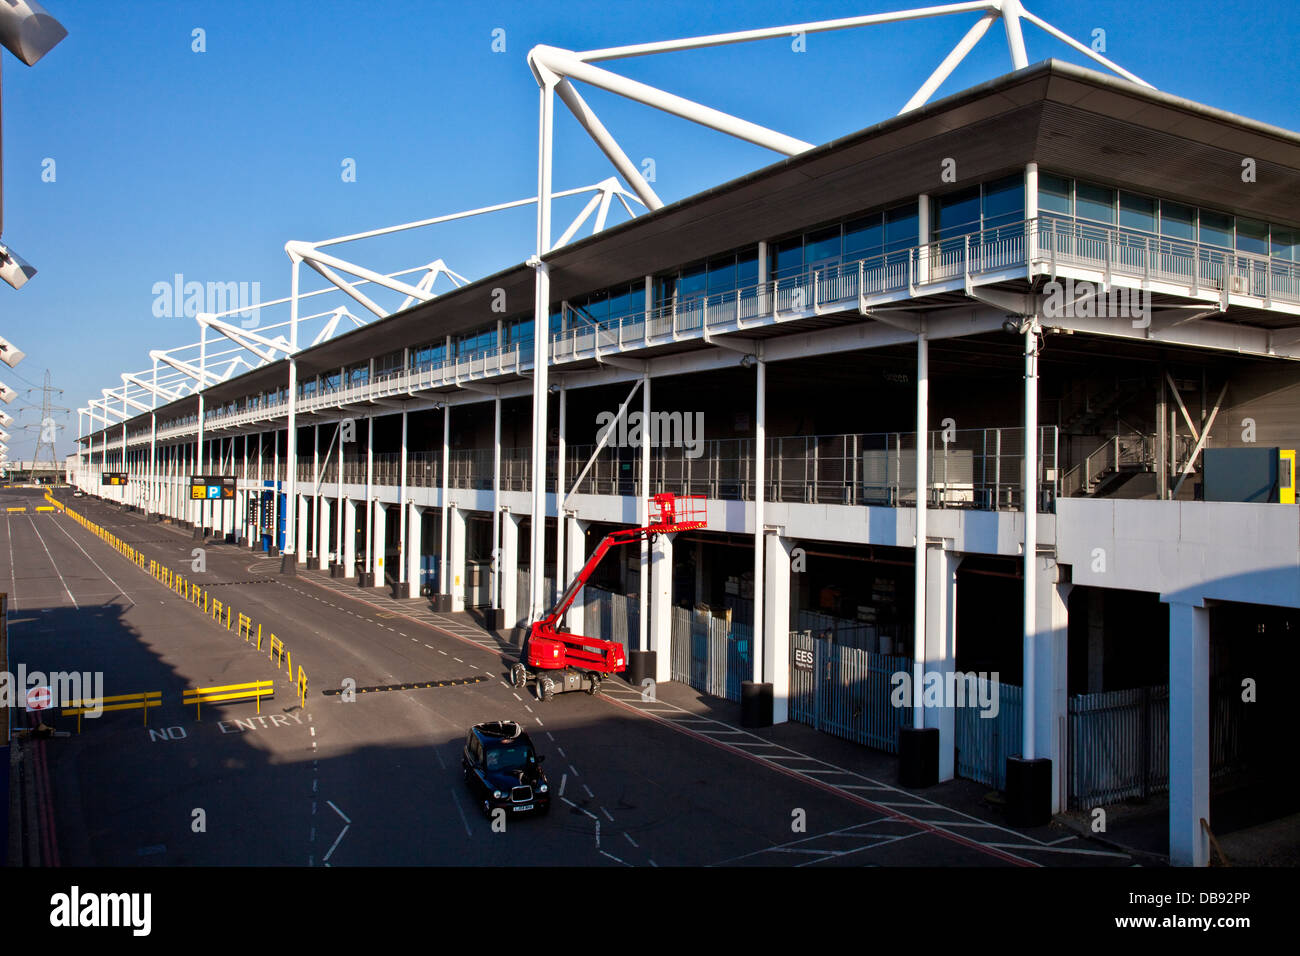 ExCeL London, Exhibition and Convention Centre, London, England - Stock Image